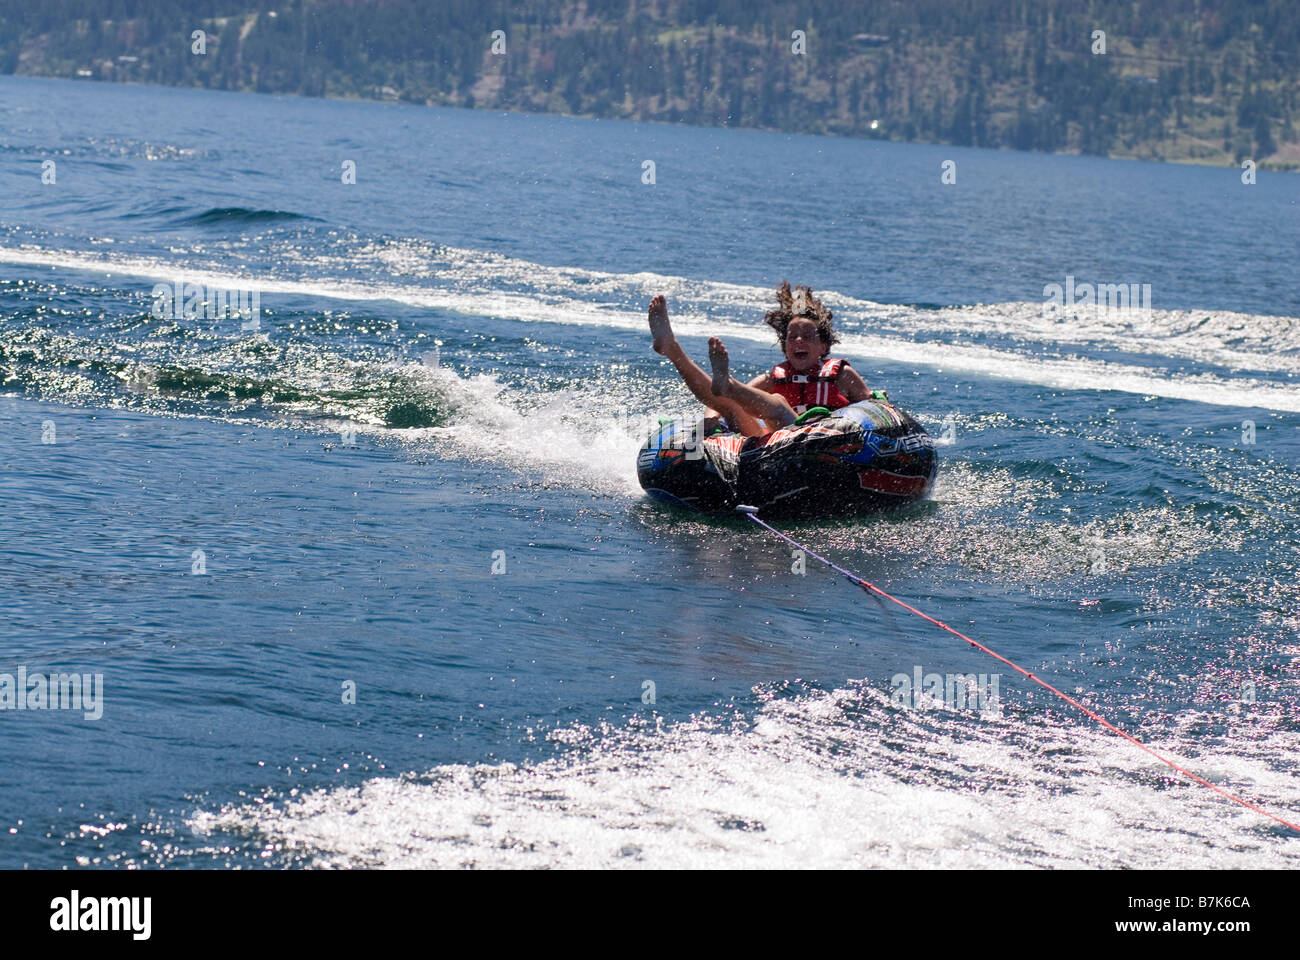 Young woman on inner tube behind boat, Okanagan Centre, BC Canada - Stock Image